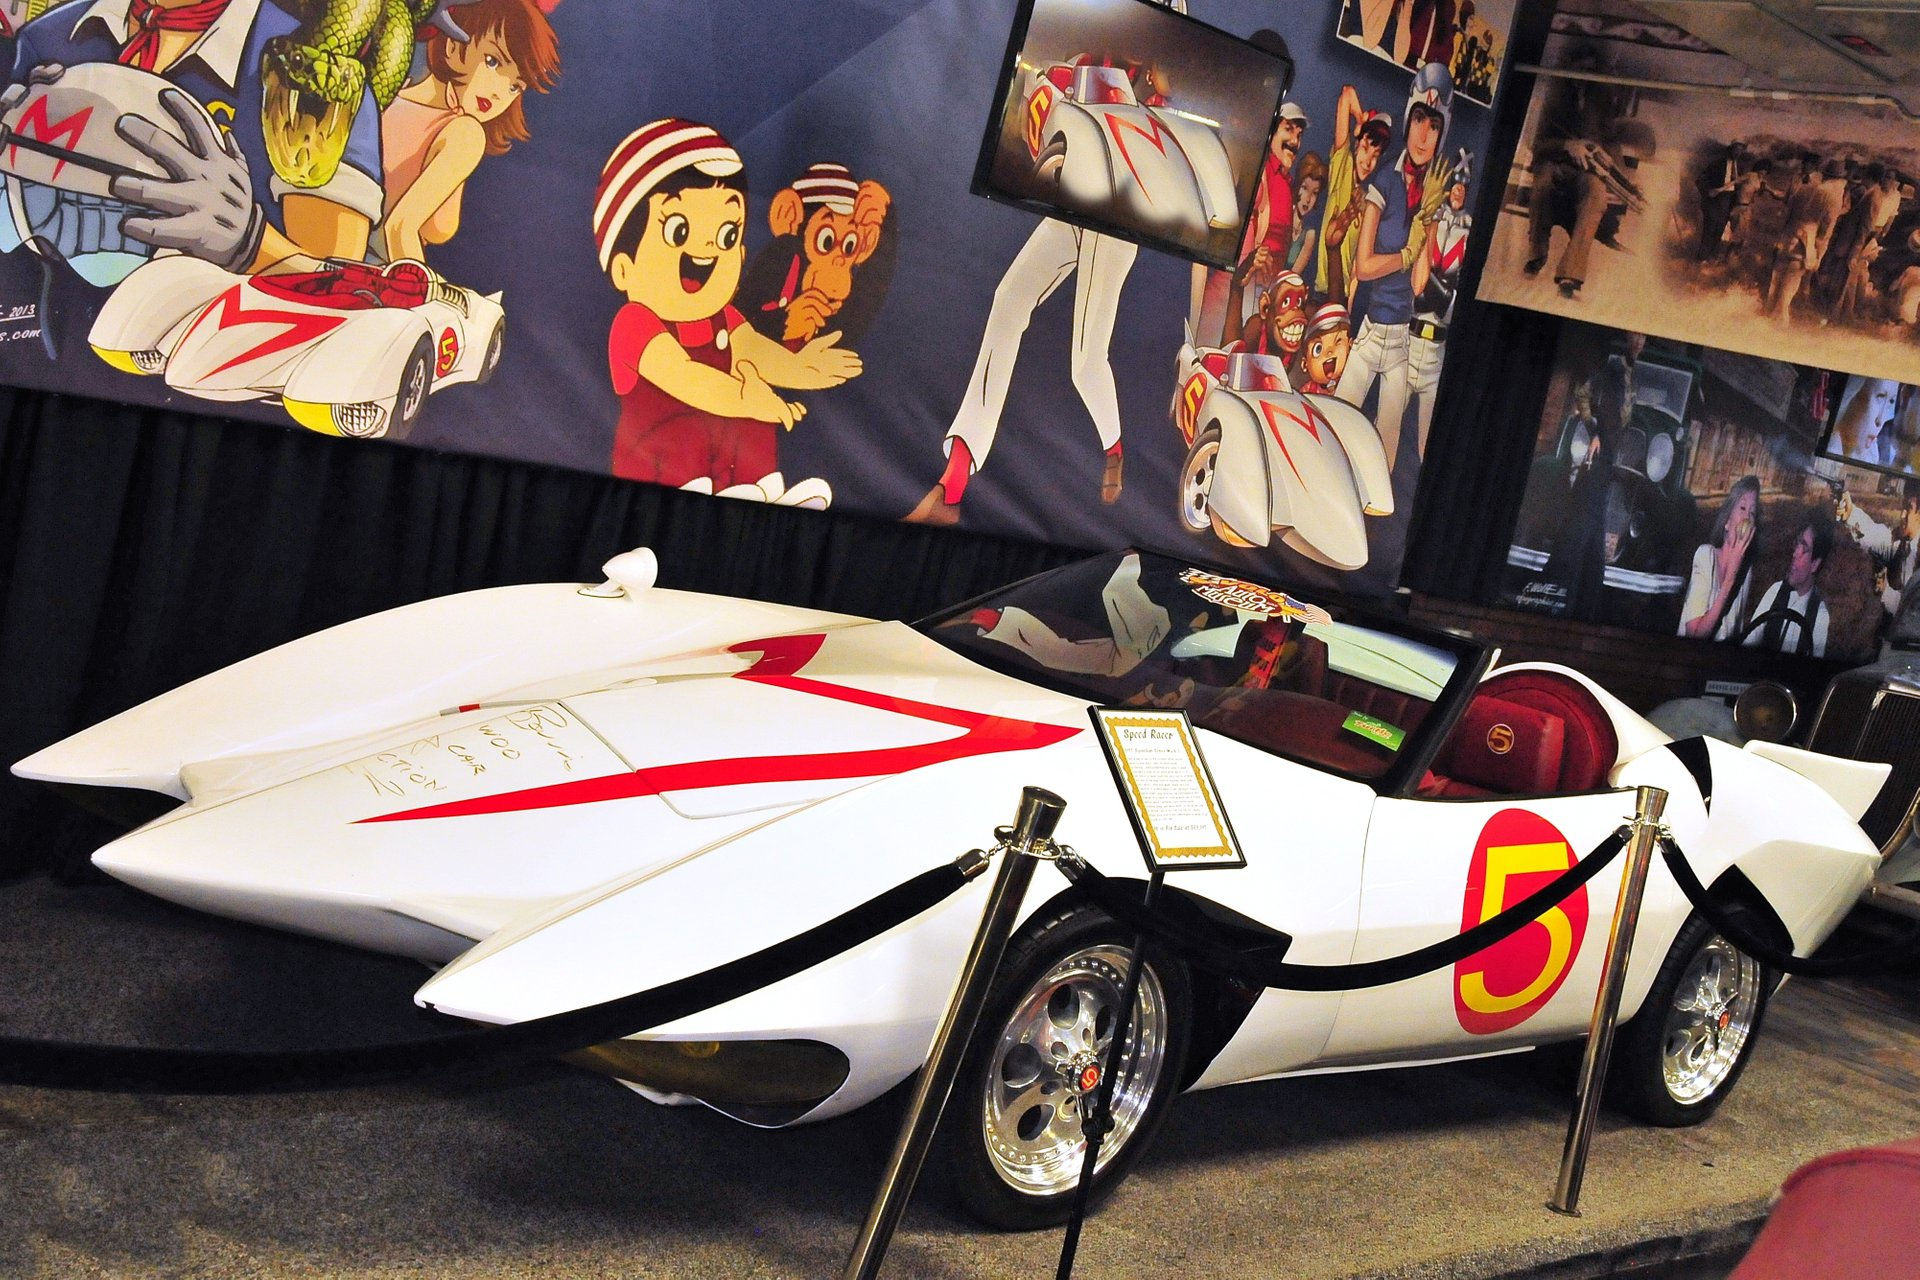 rent the Chevy mach 5